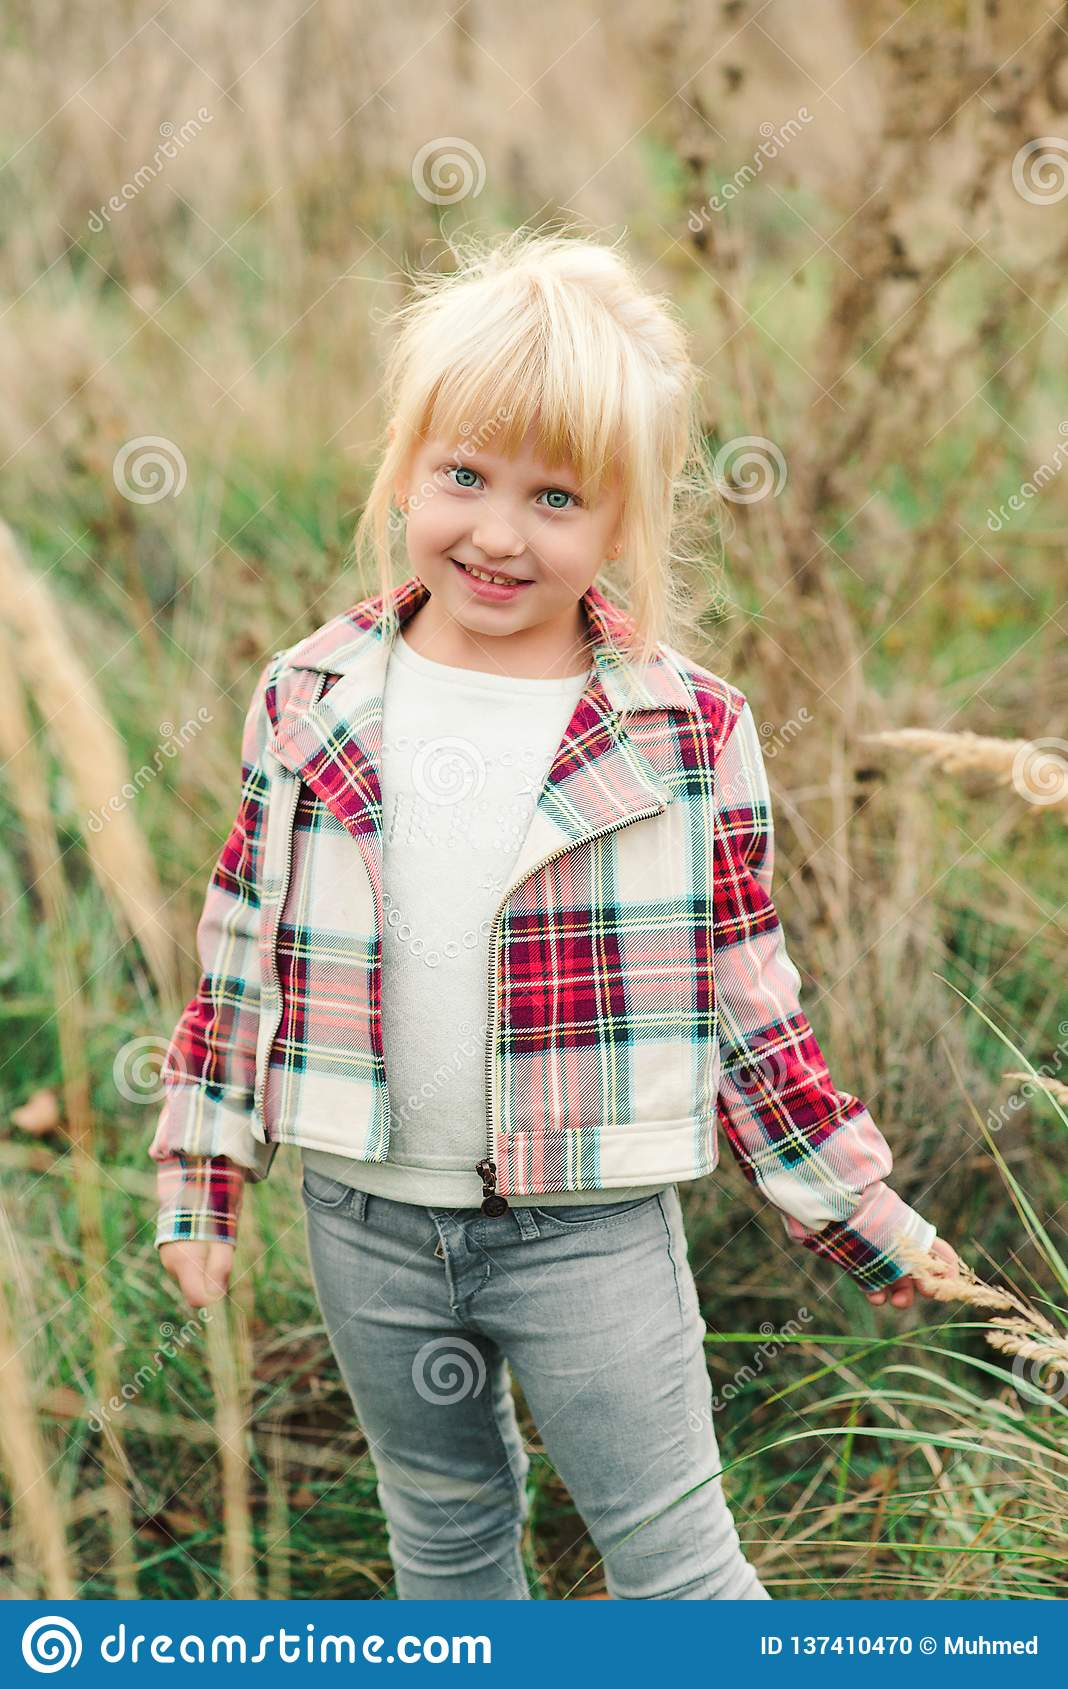 Cute little girl walking at countryside. Fashionable little girl with blue eyes and blondy hair. Kids fashion. Happy child at